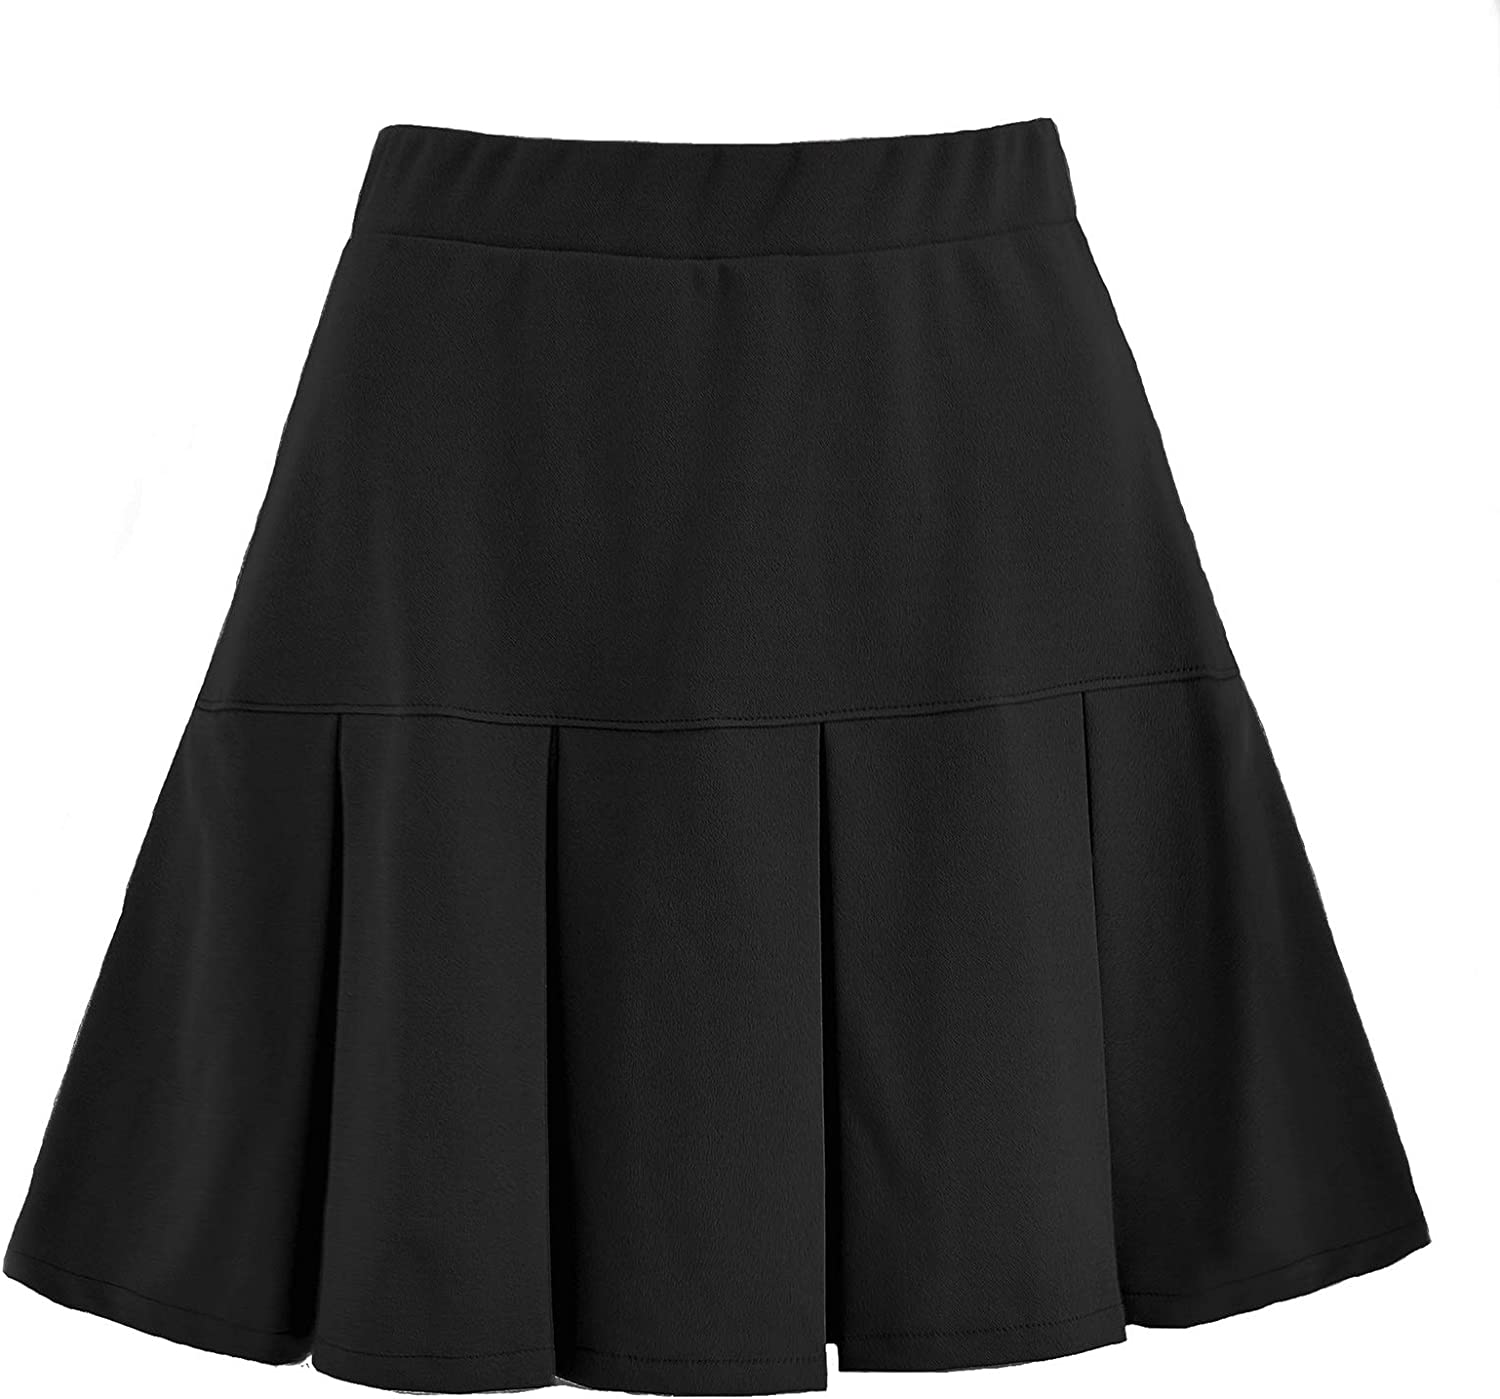 Women's Basic Versatile Stretchy Solid Color Mini Pleated Casual Short Skirt